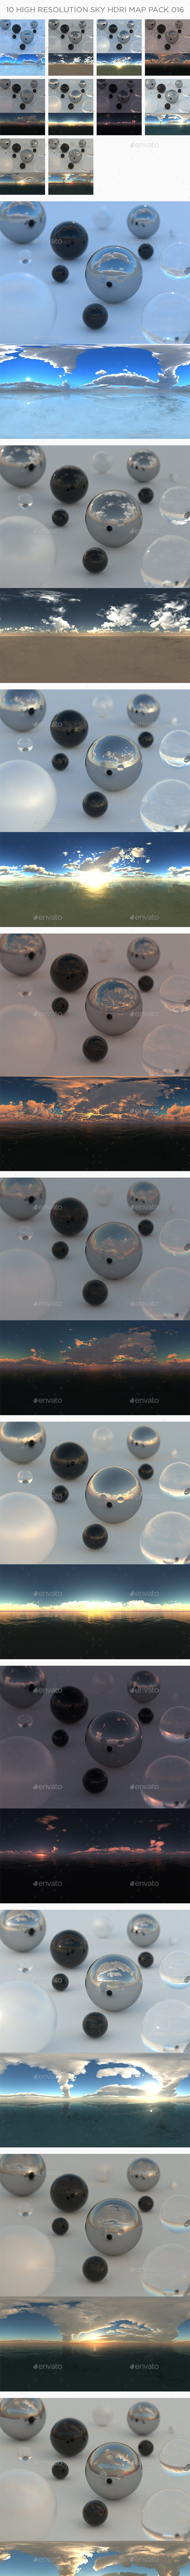 10 High Resolution Sky HDRi Maps Pack 016 - 3DOcean Item for Sale